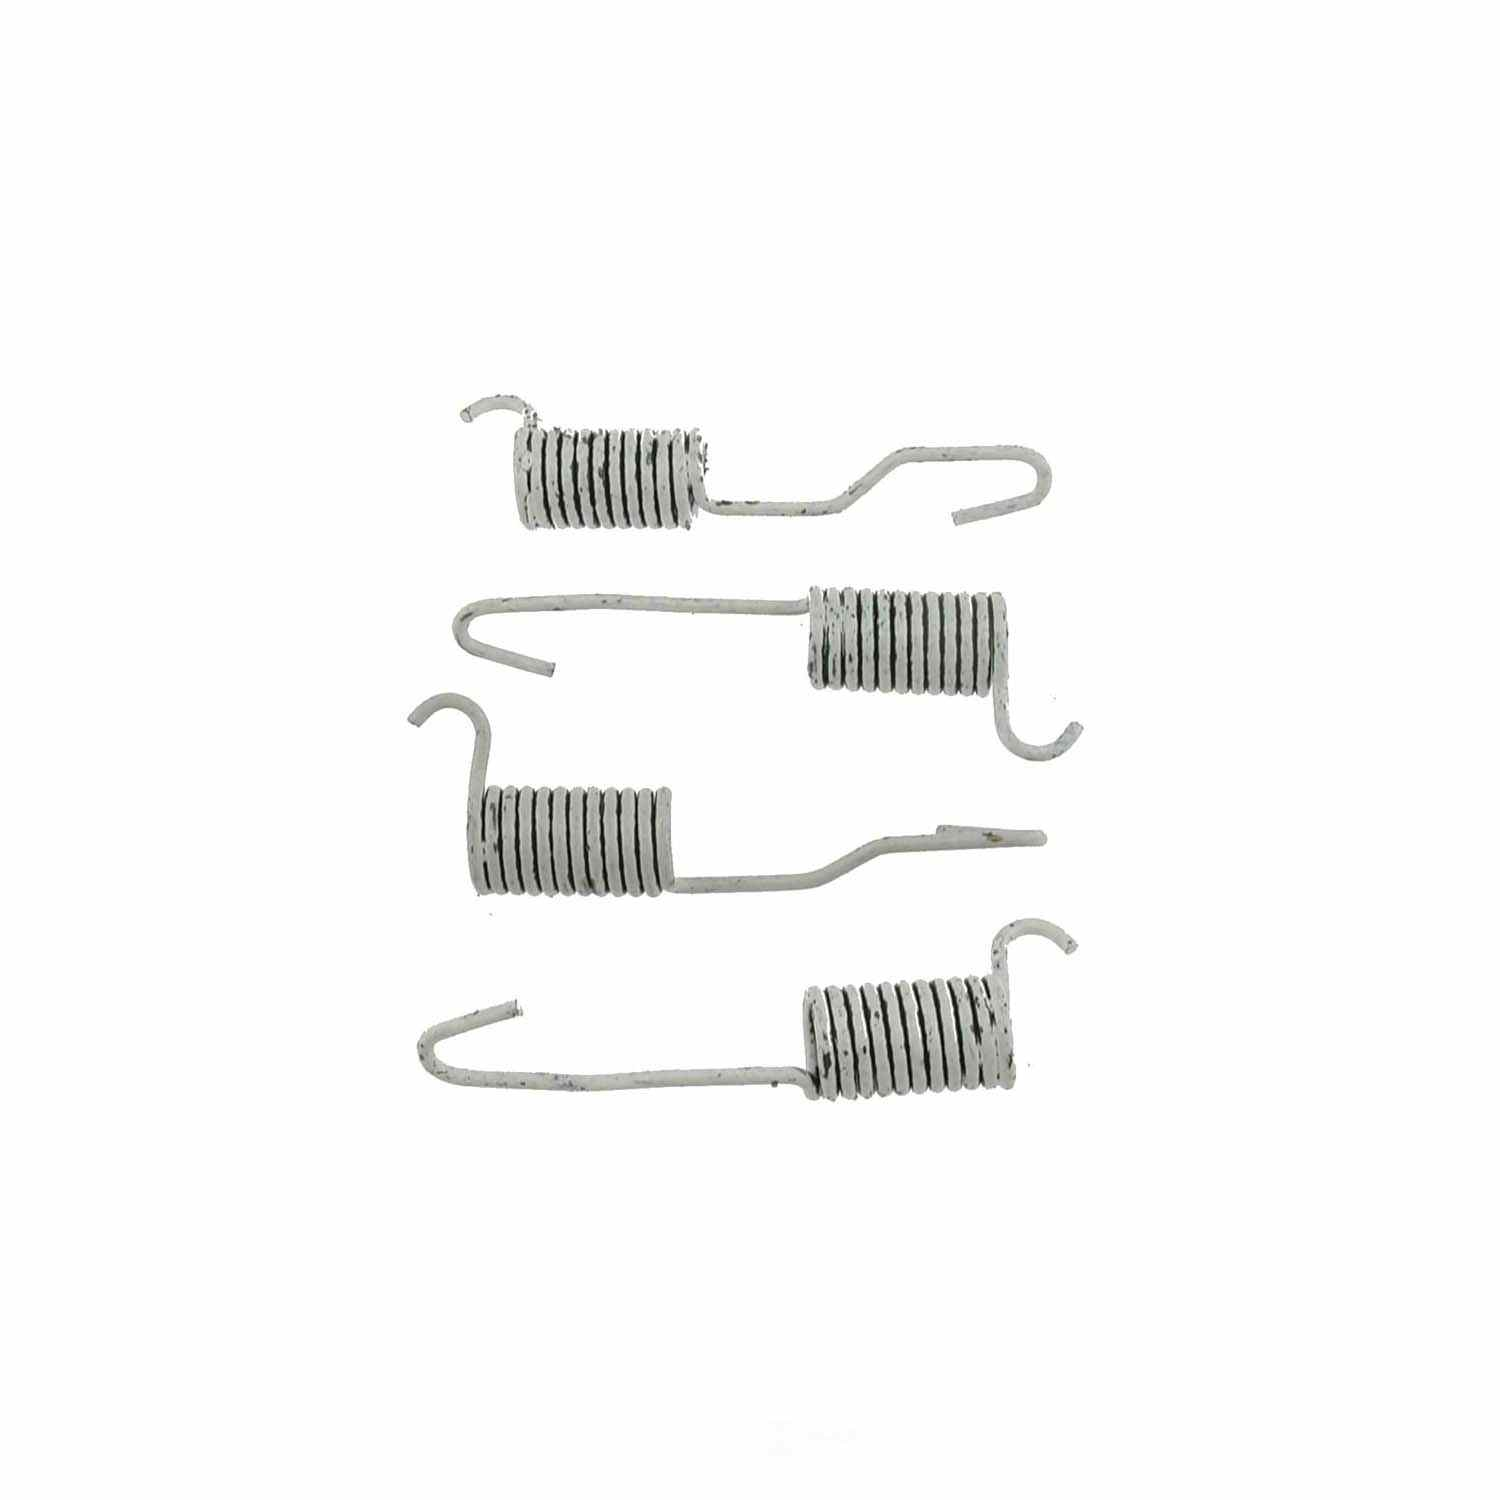 CARLSON QUALITY BRAKE PARTS - Drum Brake Shoe Return Spring Kit - CRL H181